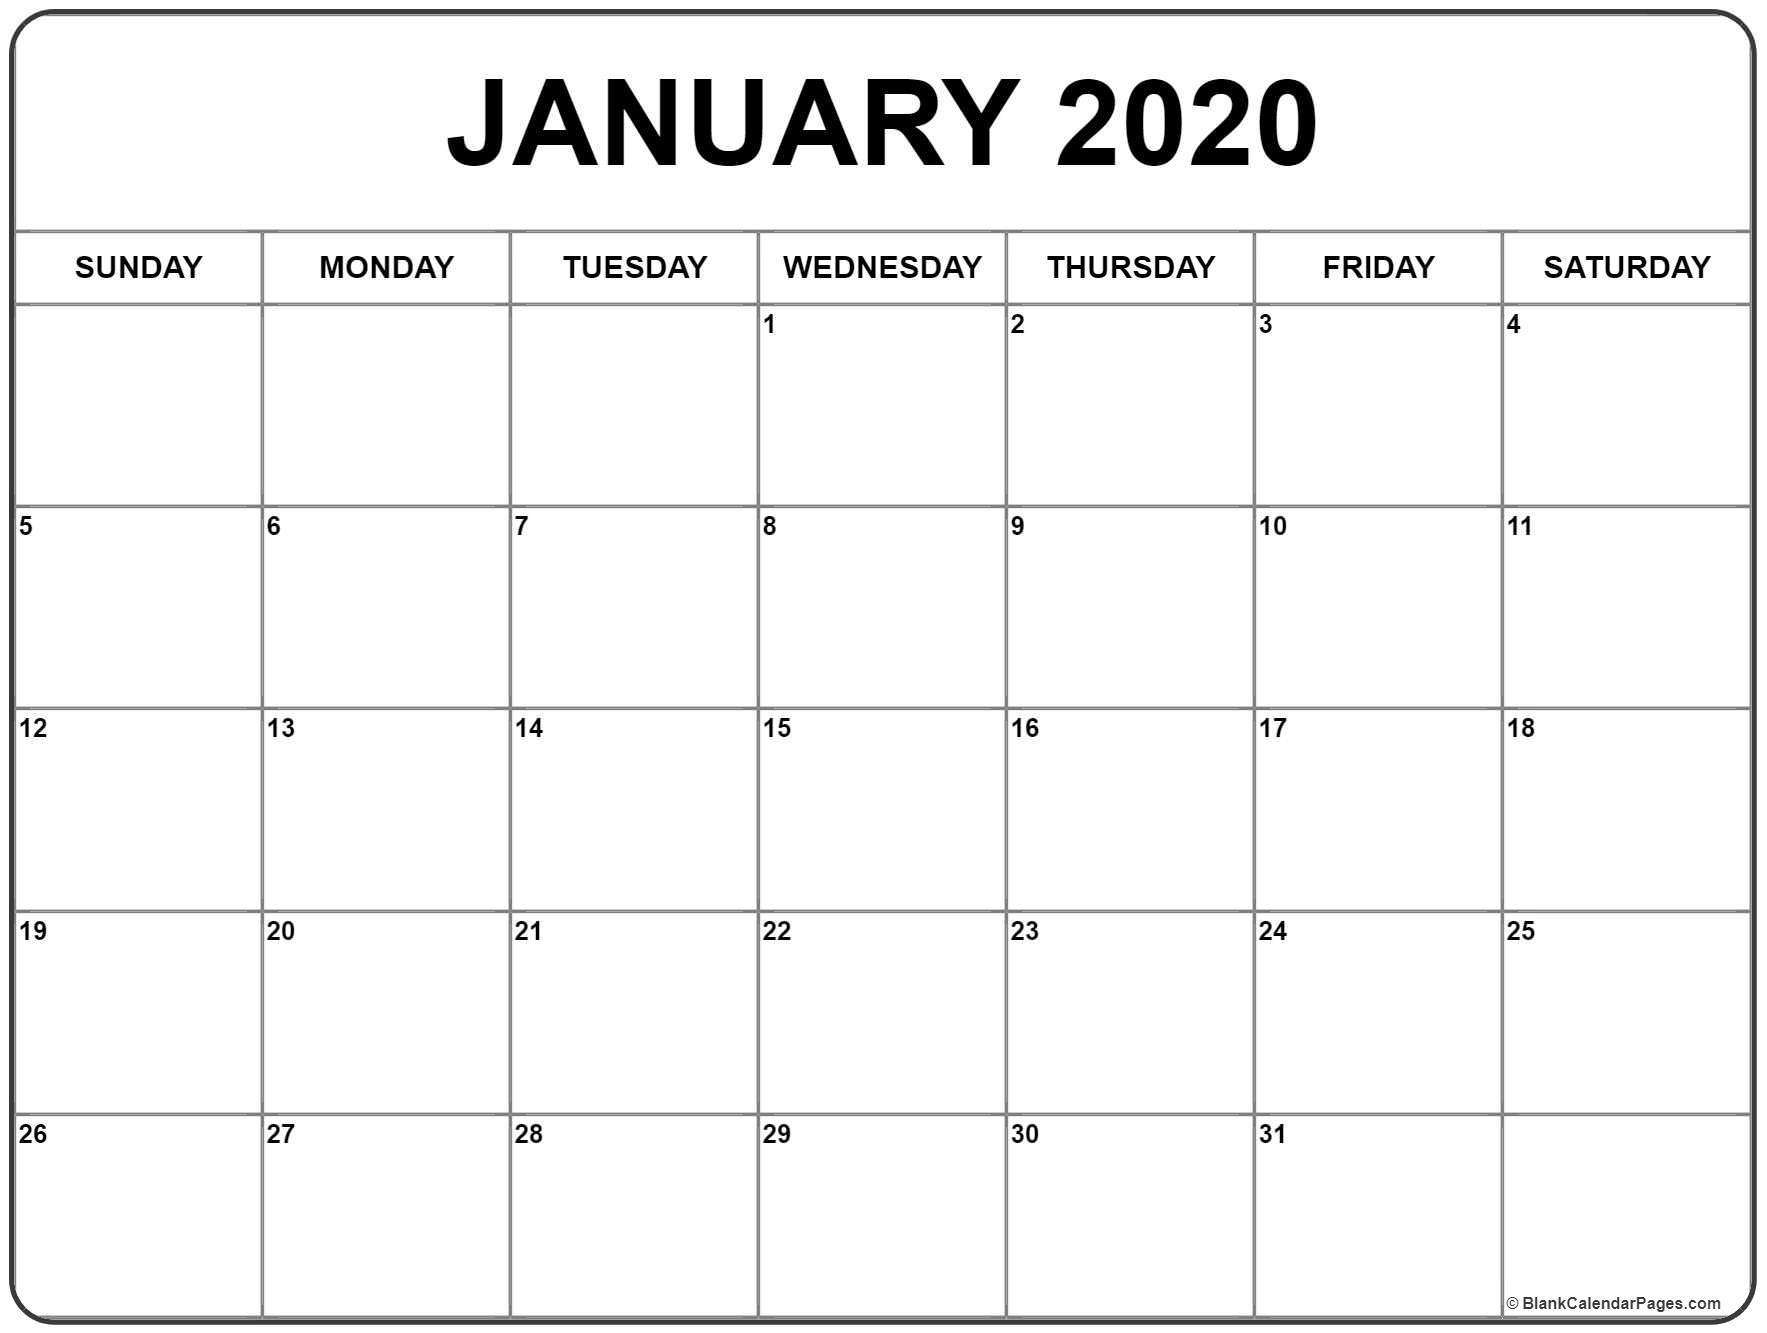 January 2020 Calendar | Free Printable Monthly Calendars-January 2020 School Calendar